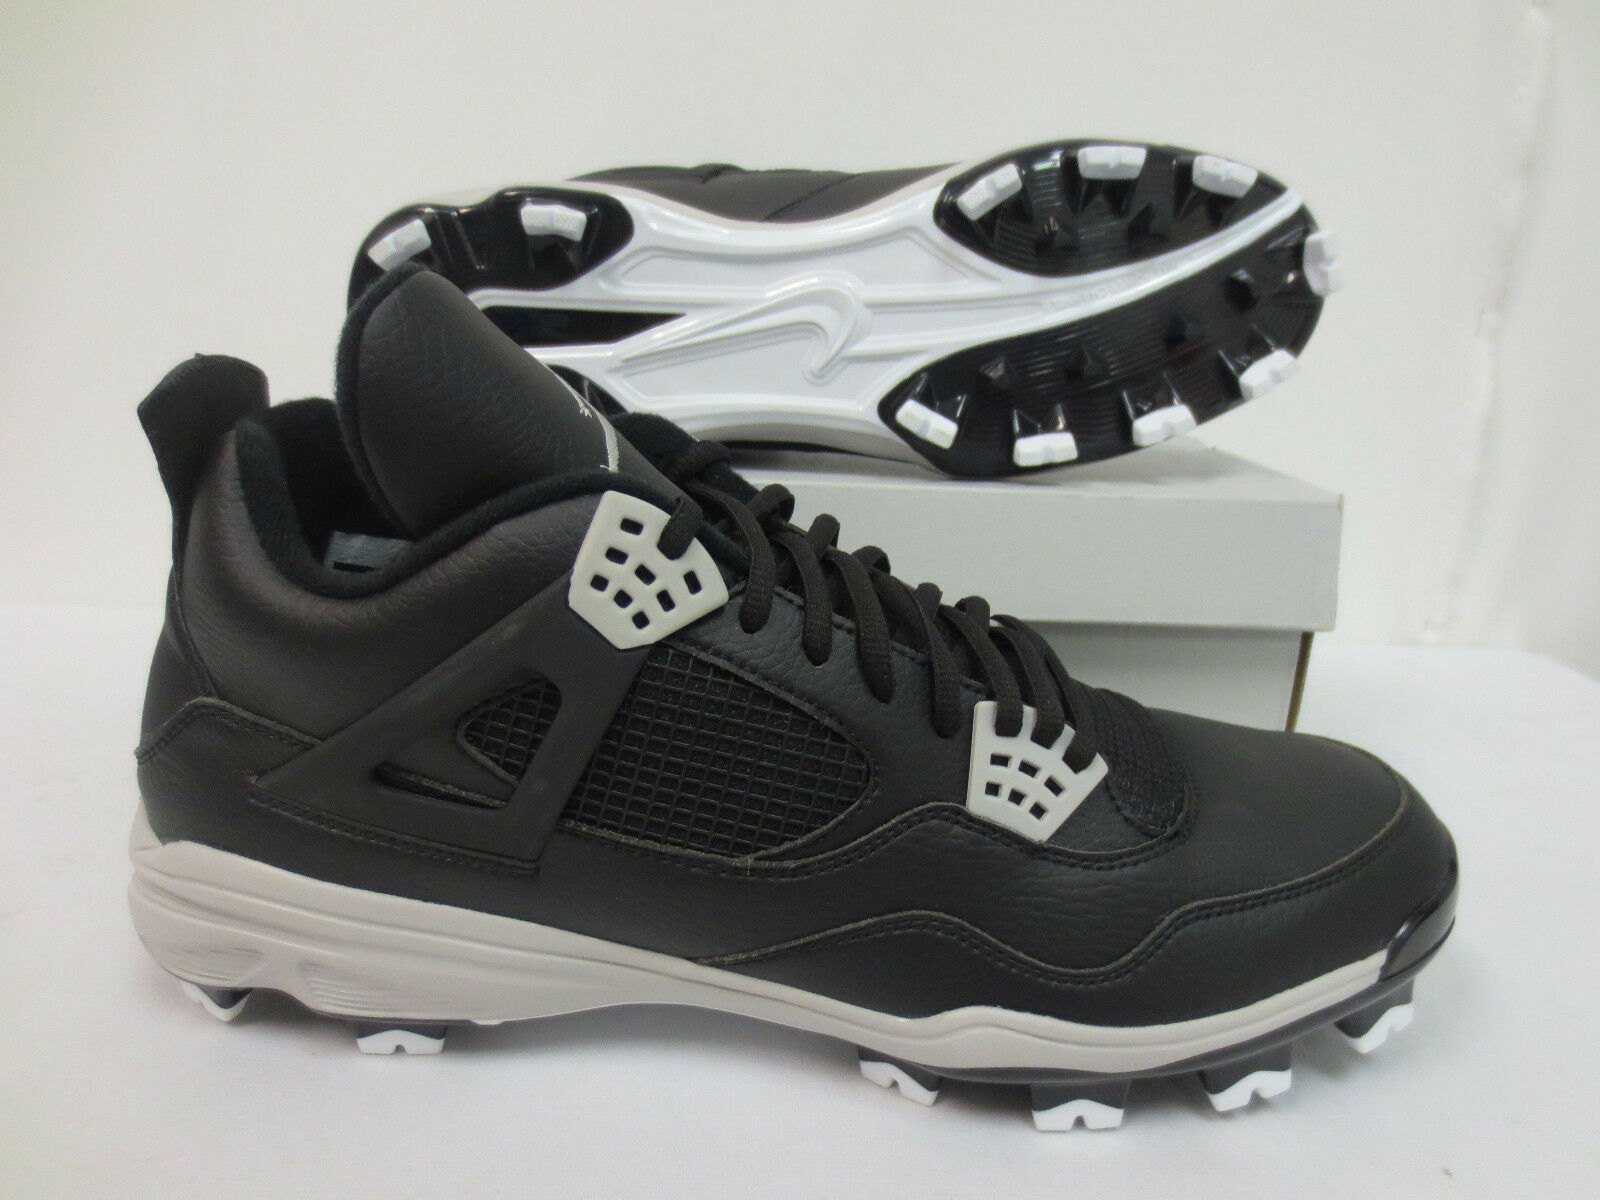 JORDAN RETRO IV 4 OREO MCS BASEBALL CLEATS SIZE 15 807709 010 JUMPMAN AIR JORDAN